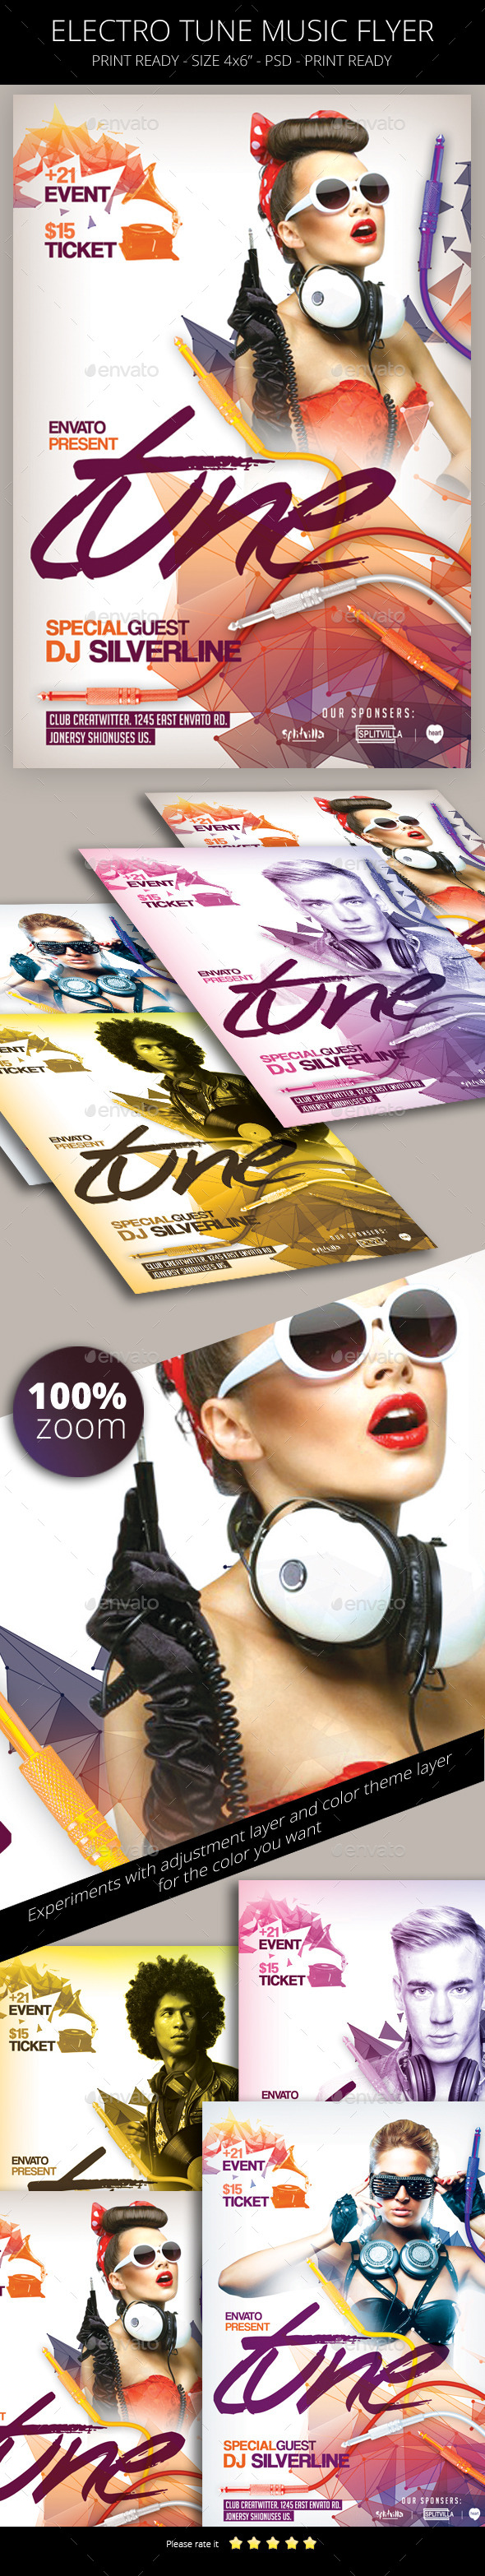 Electro Tune Music Flyer Template - Clubs & Parties Events